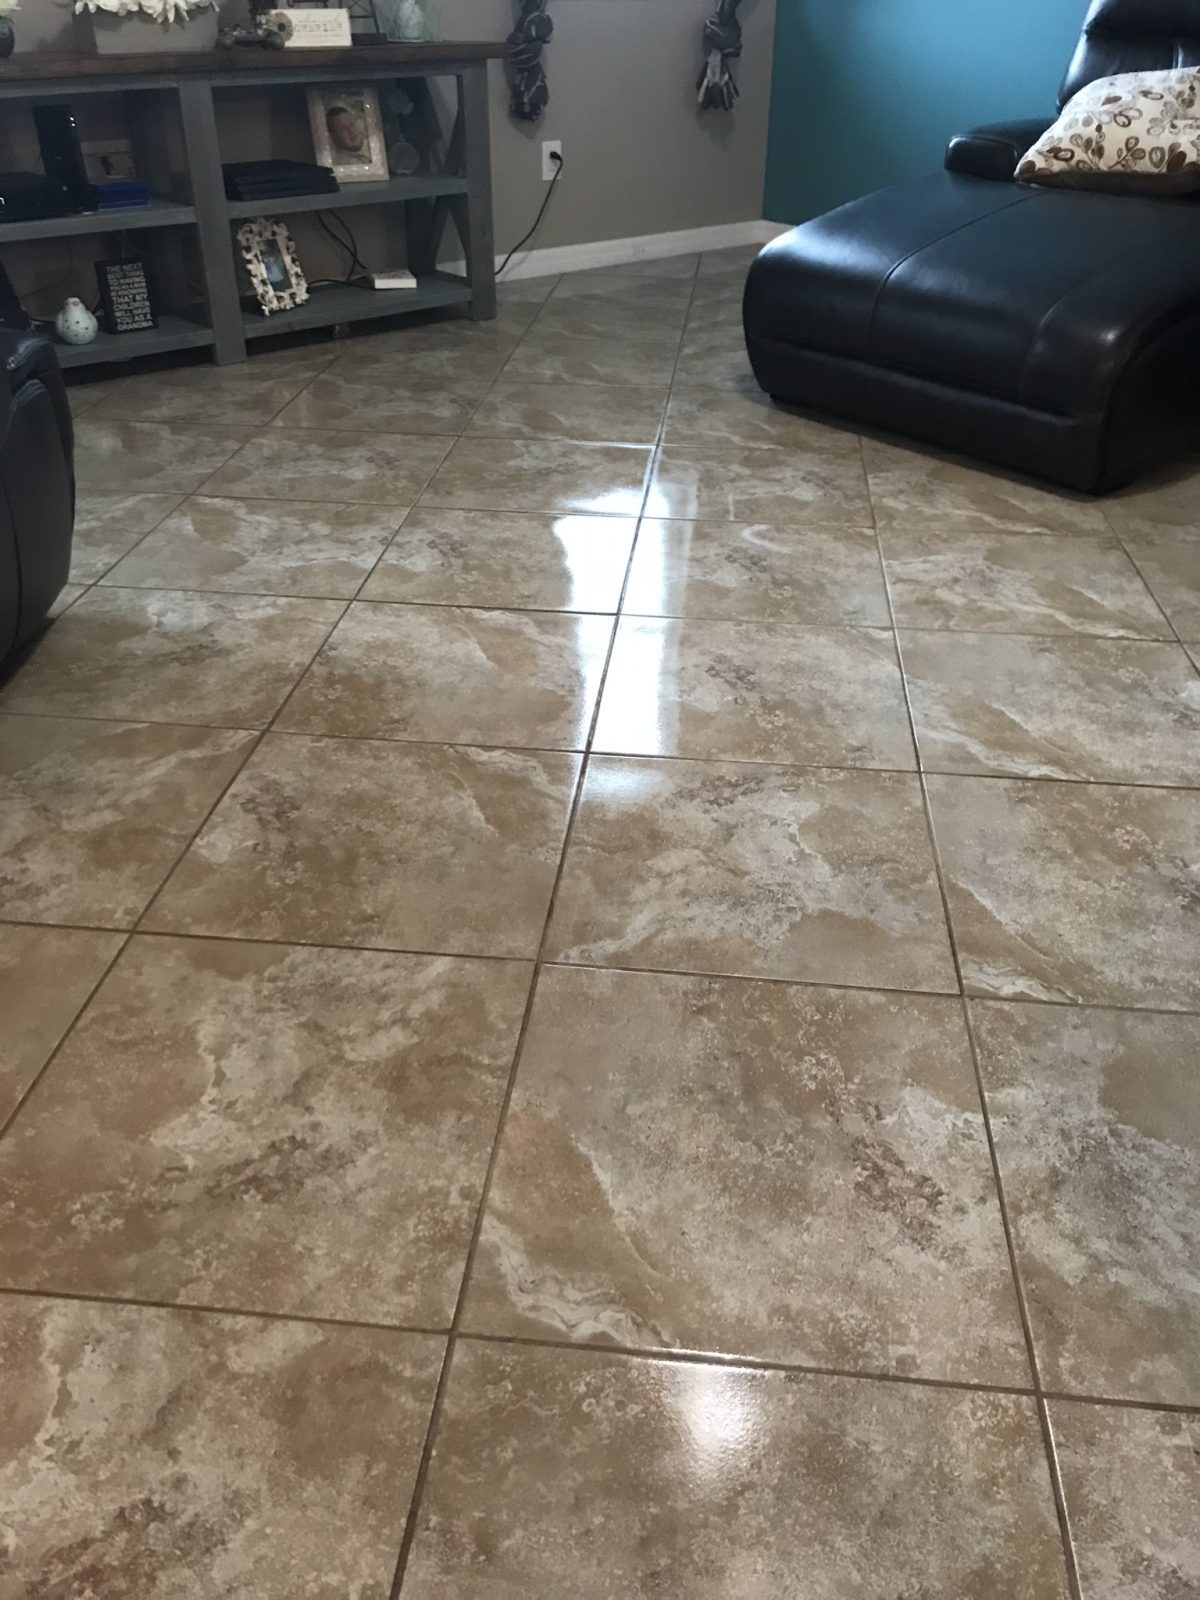 Professional Tile & Grout Cleaning Holiday Florida by Howards Cleaning Service